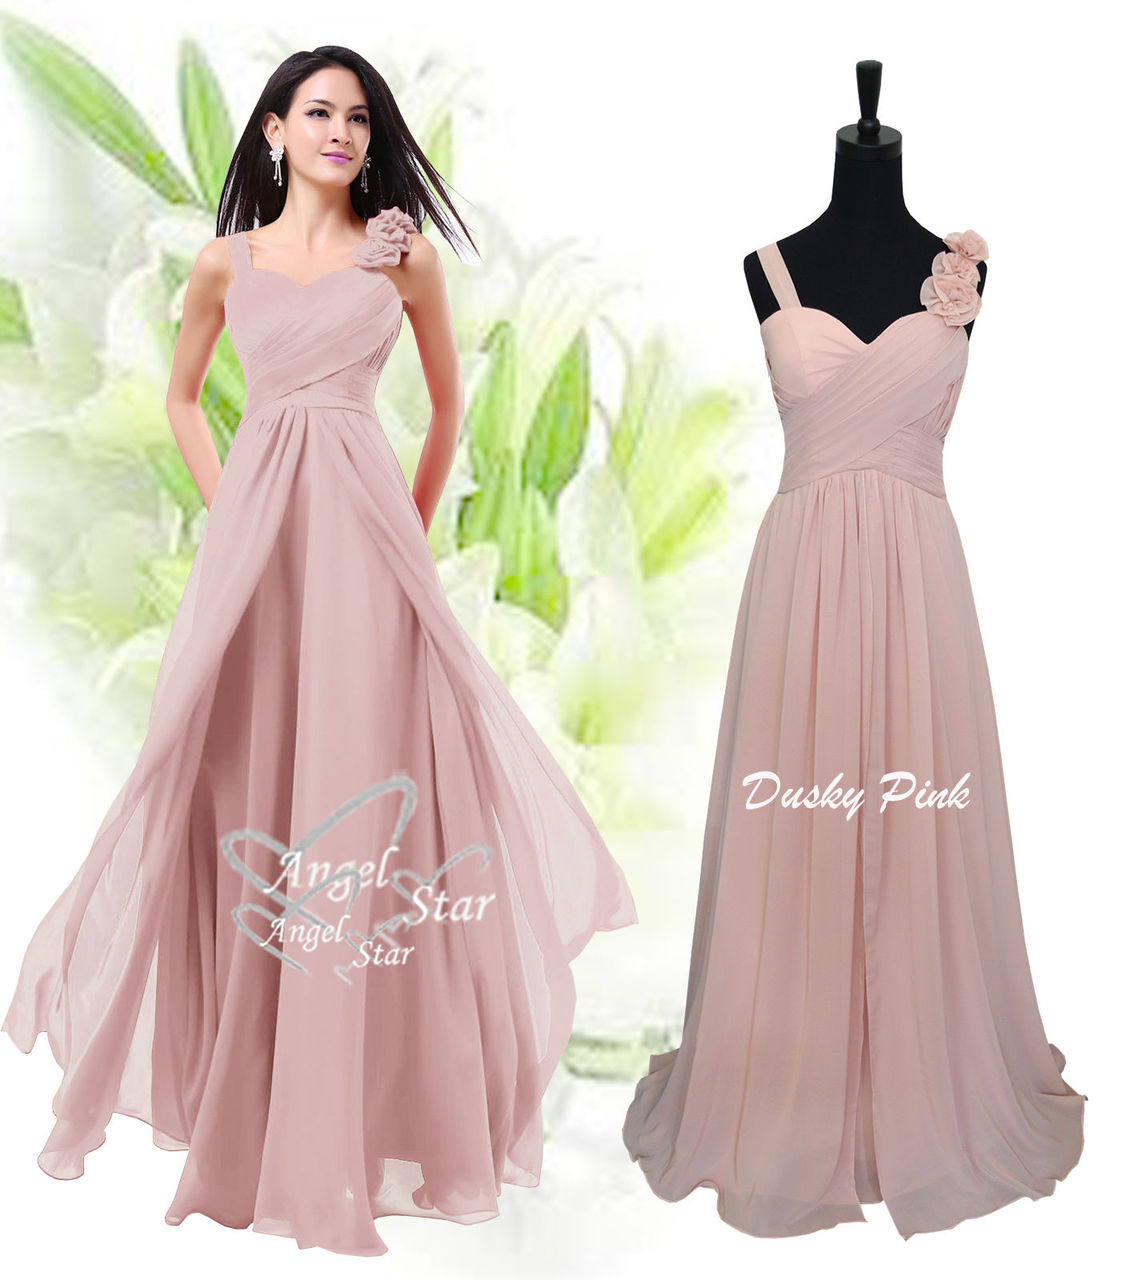 6368e44981f14 New Formal Long Evening Ball Gown Party Prom Bridesmaid Dress Size 6 - 24 -  Angel Fashion ltd